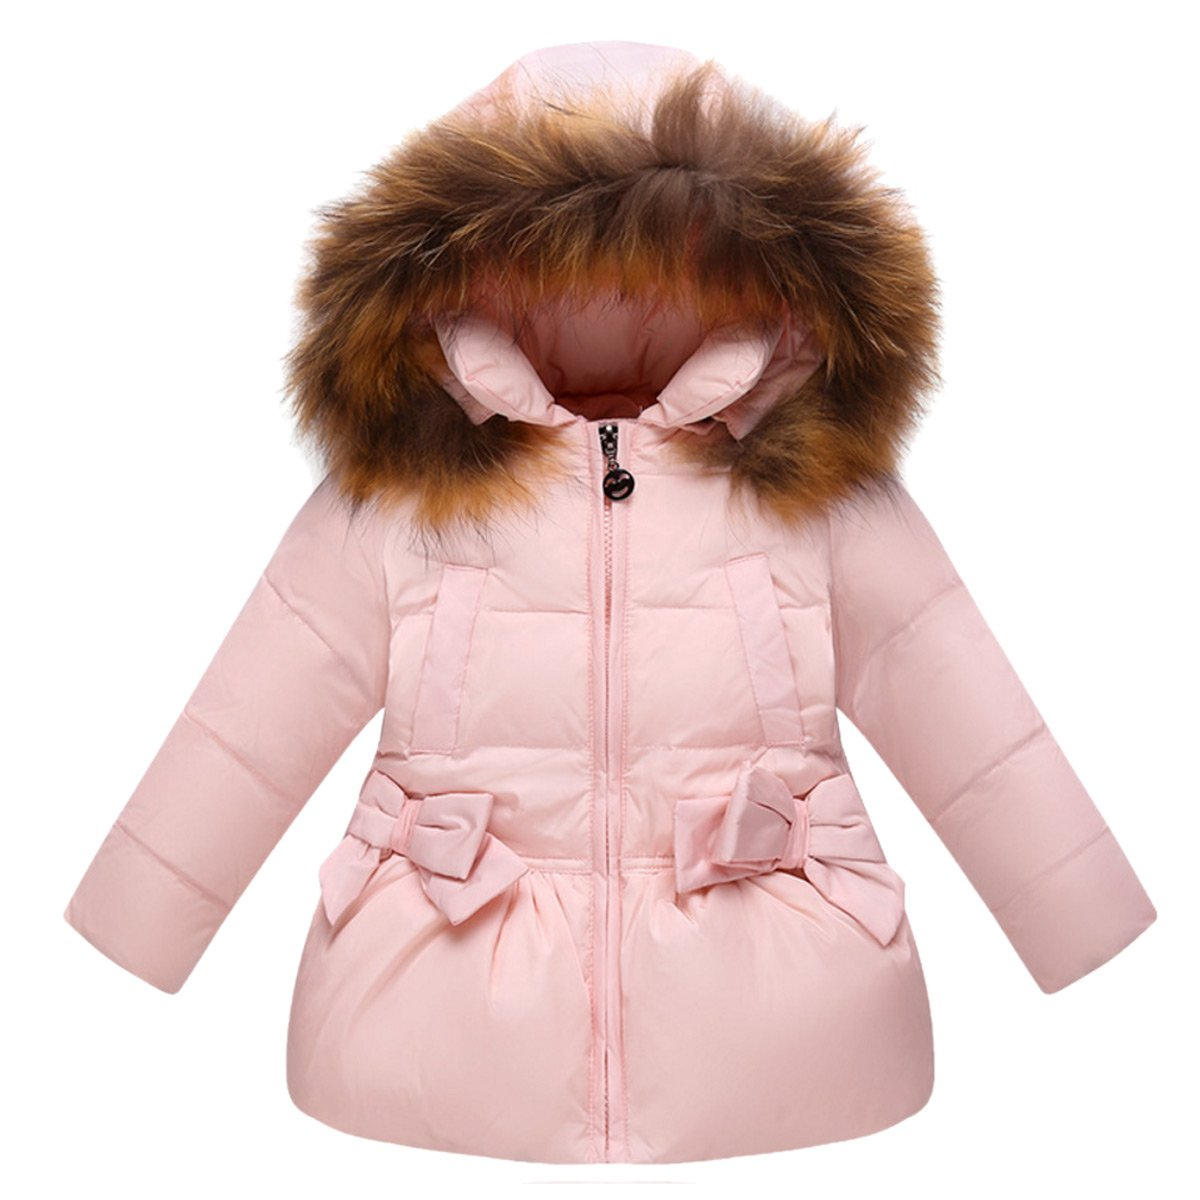 Girls Winter Puffer Down Jacket Coat Thicken Padded Plush Fur Trim Hooded Parka with